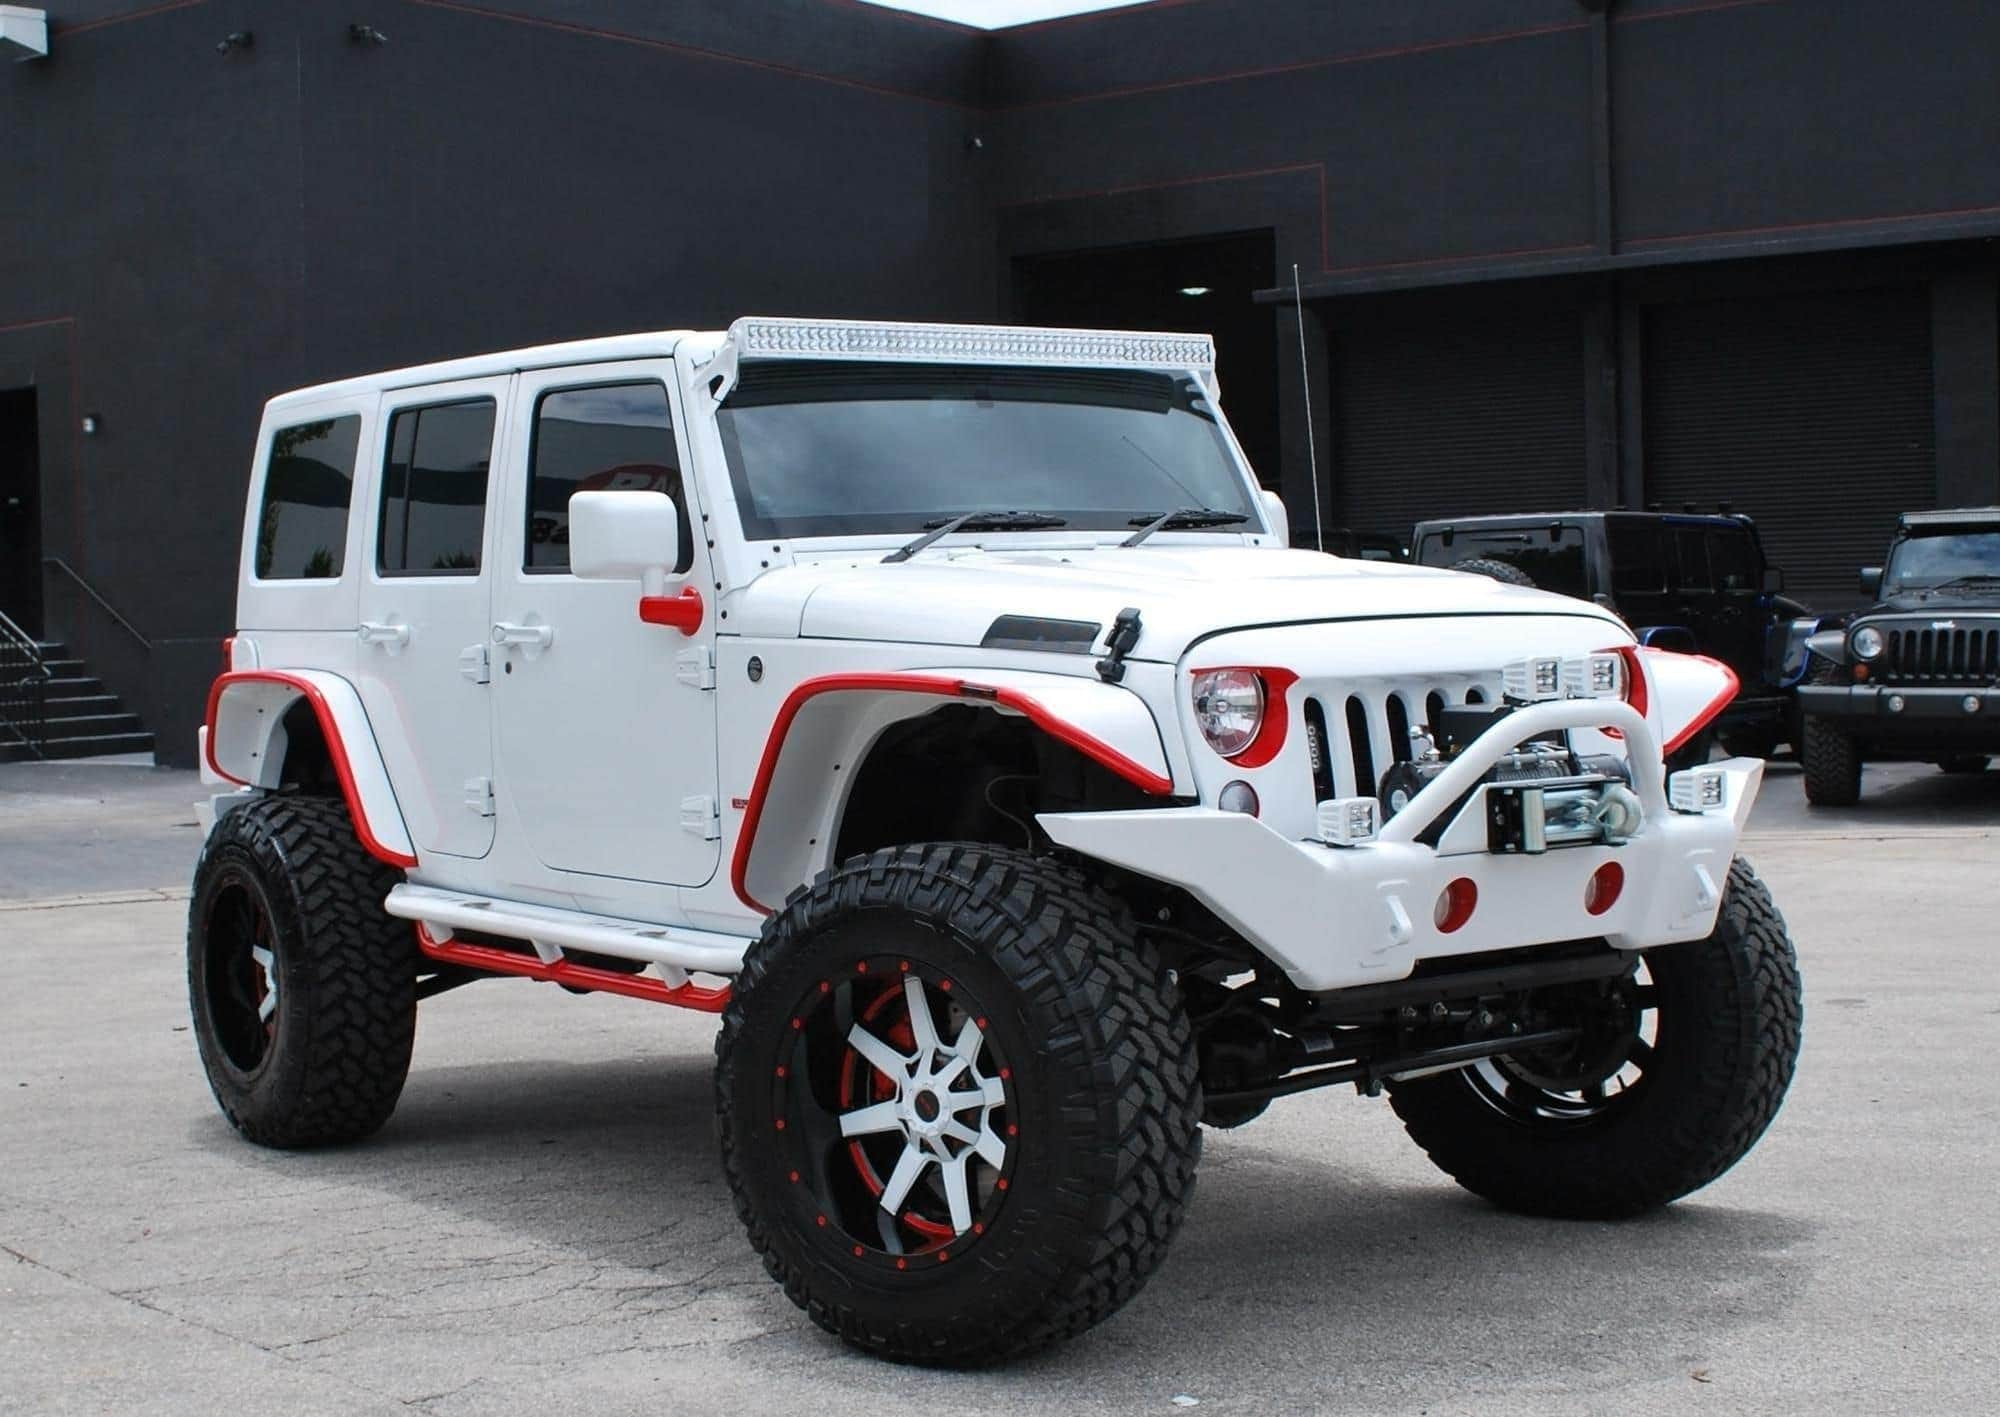 jeep dream meaning, dream about jeep, jeep dream interpretation, seeing in a dream jeep